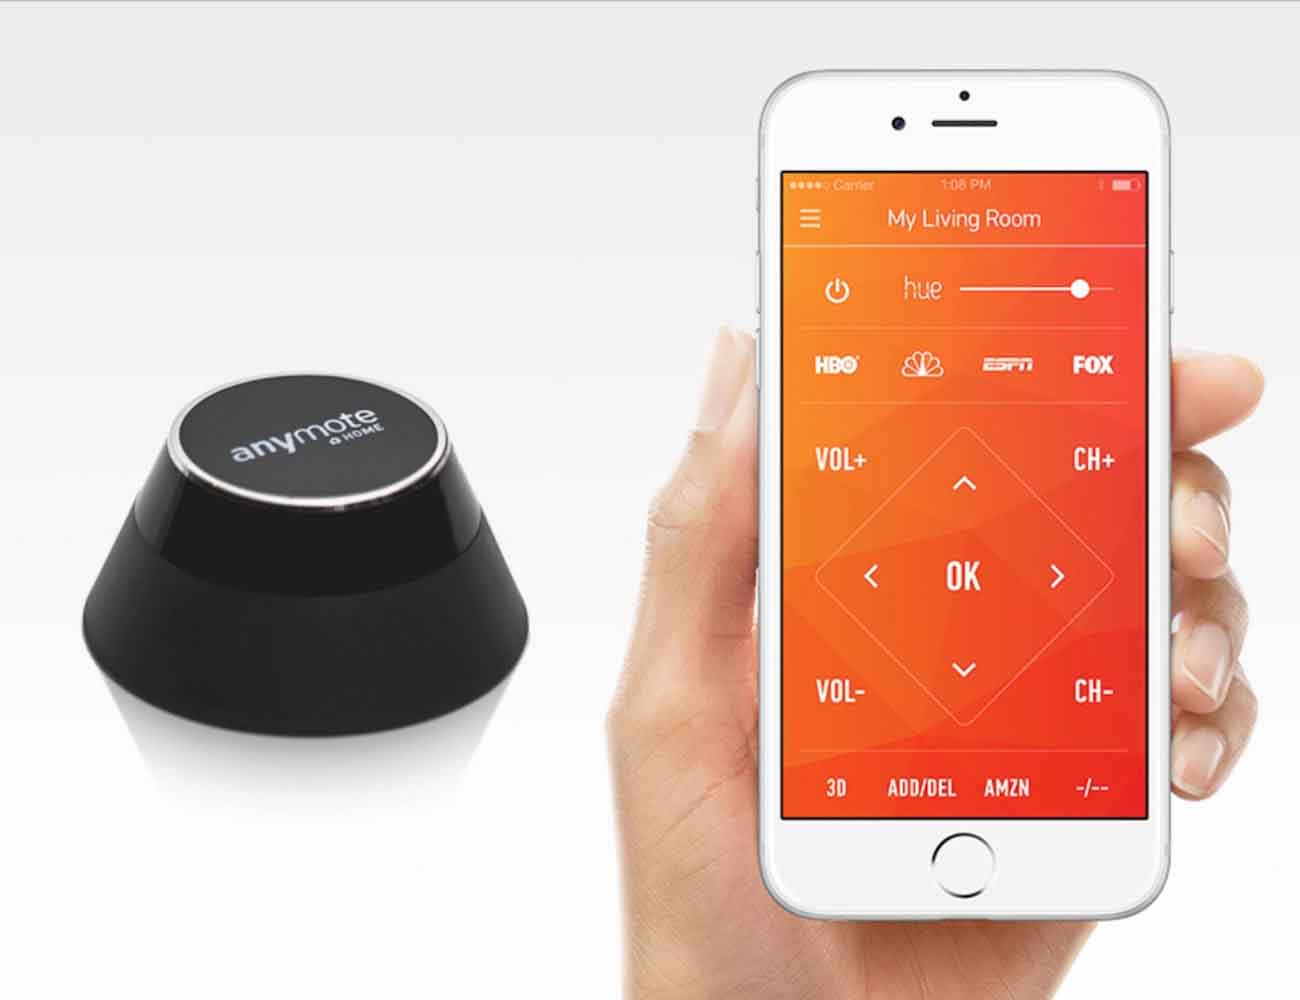 AnyMote Home – The Smart Universal Remote Control